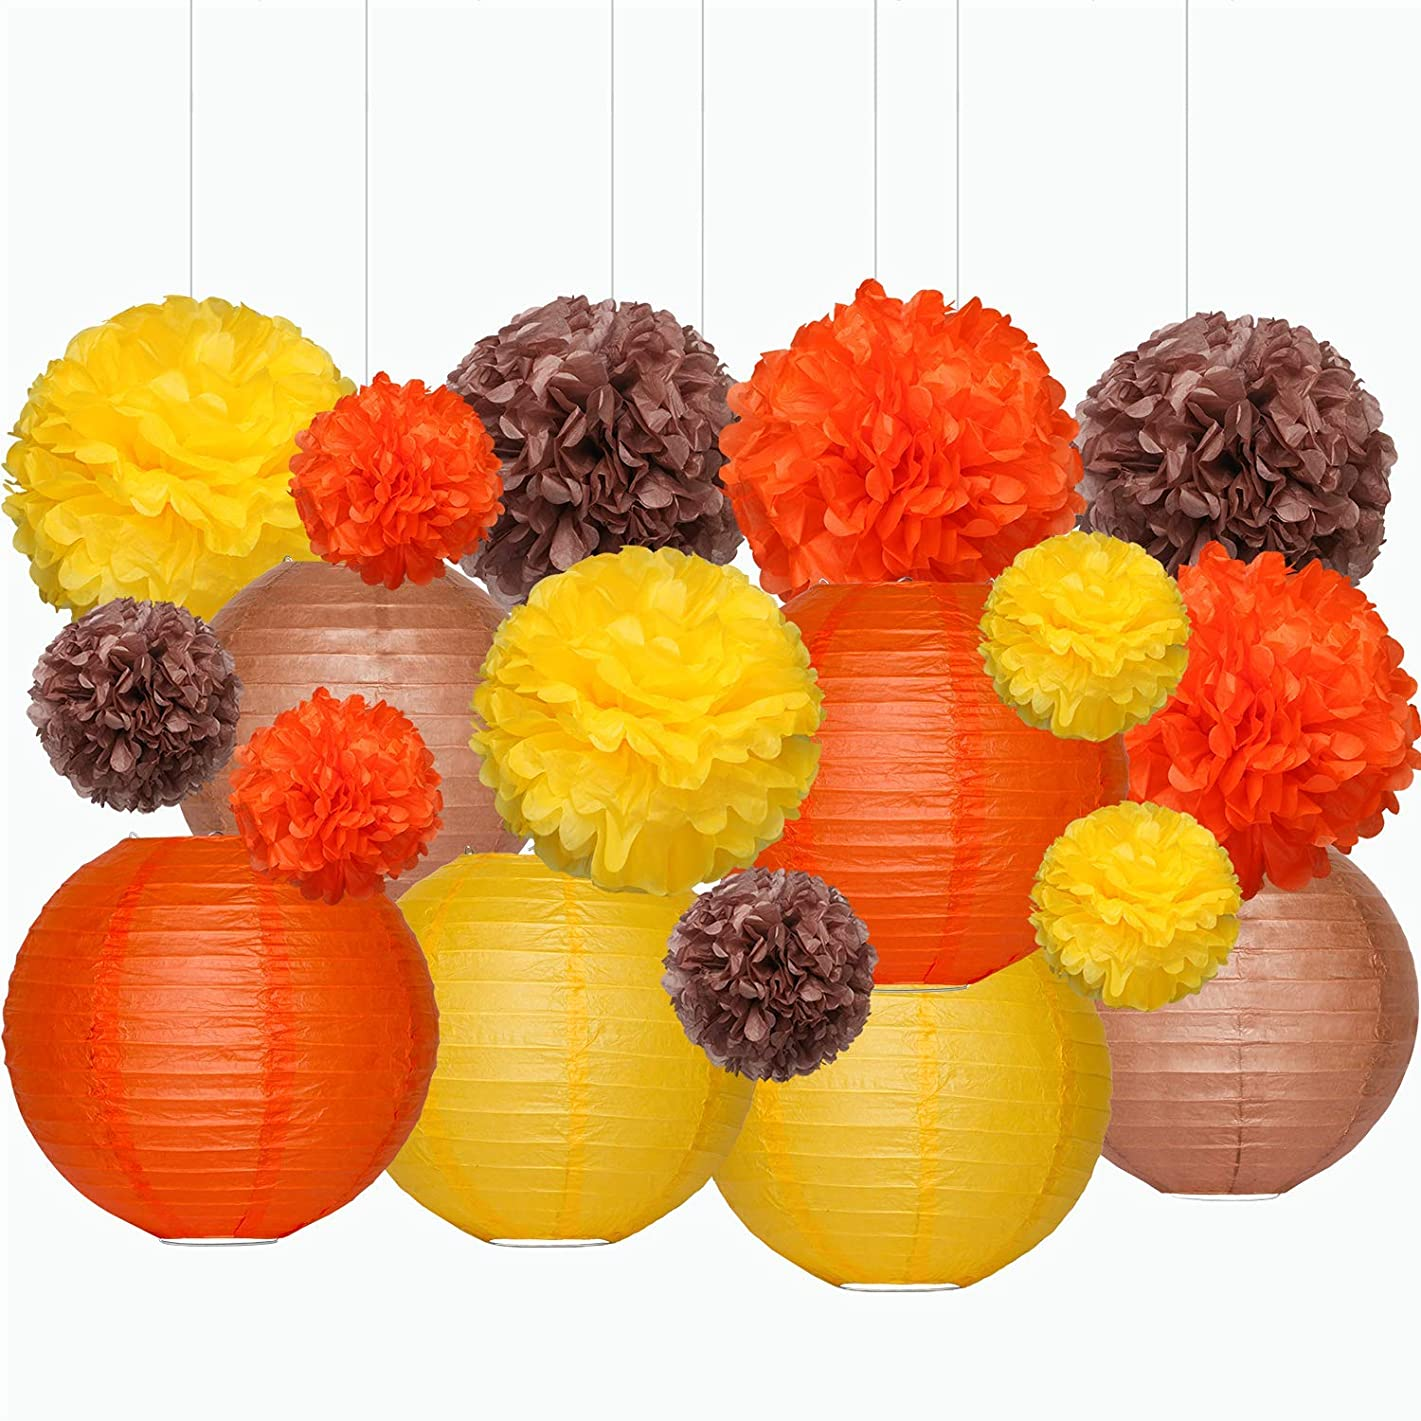 Sumille 18 Pack Tissue Paper Pom Poms Flowers and Round Paper Lanterns for Home, Office, Classroom, Indoor and Outdoor, 3 Size, Orange Brown Yellow